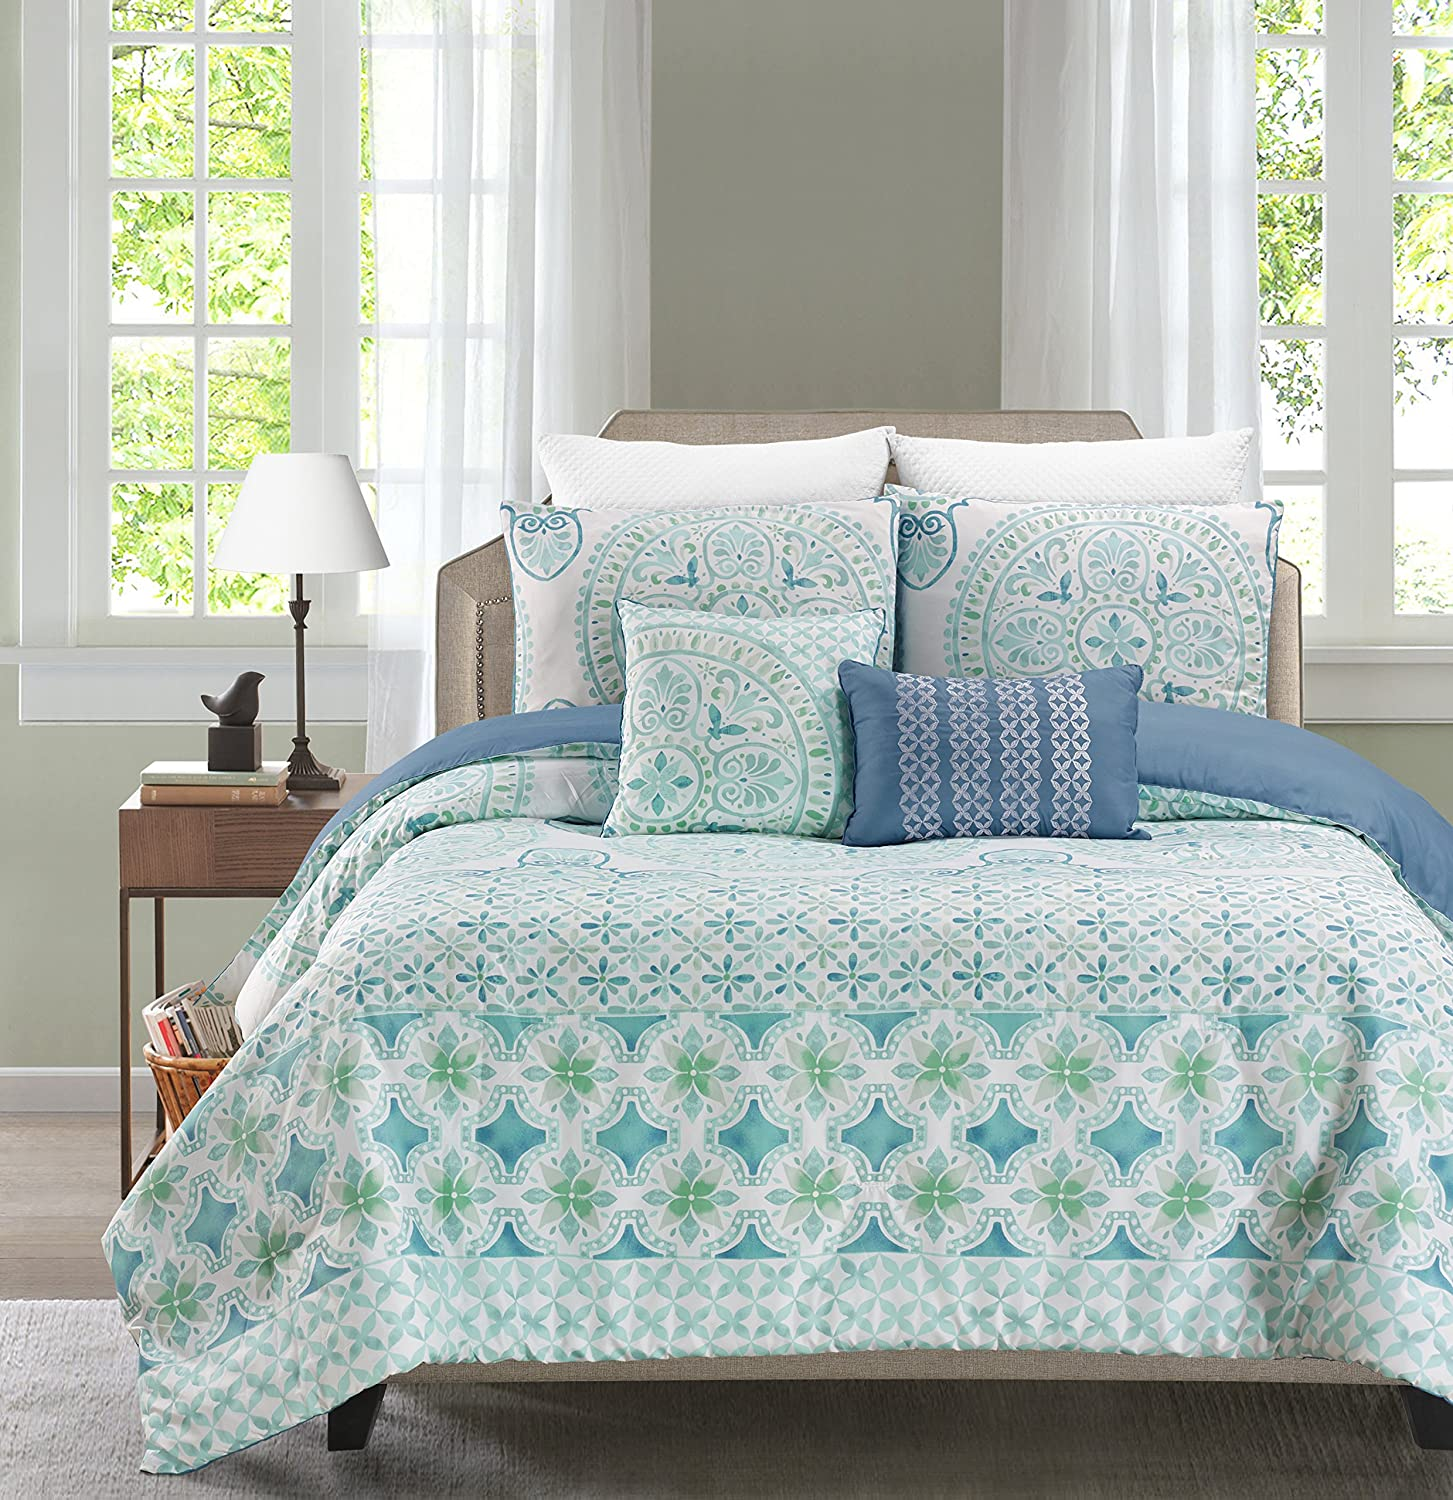 Printed 4-5 Piece Comforter Set Including 2 Decorative Pillows and Sham(s) By Blissful Living – Down Alternative, Brushed Microfiber for a Soft & Luxurious Feel (Verusha Aquamarie, Full / Queen)